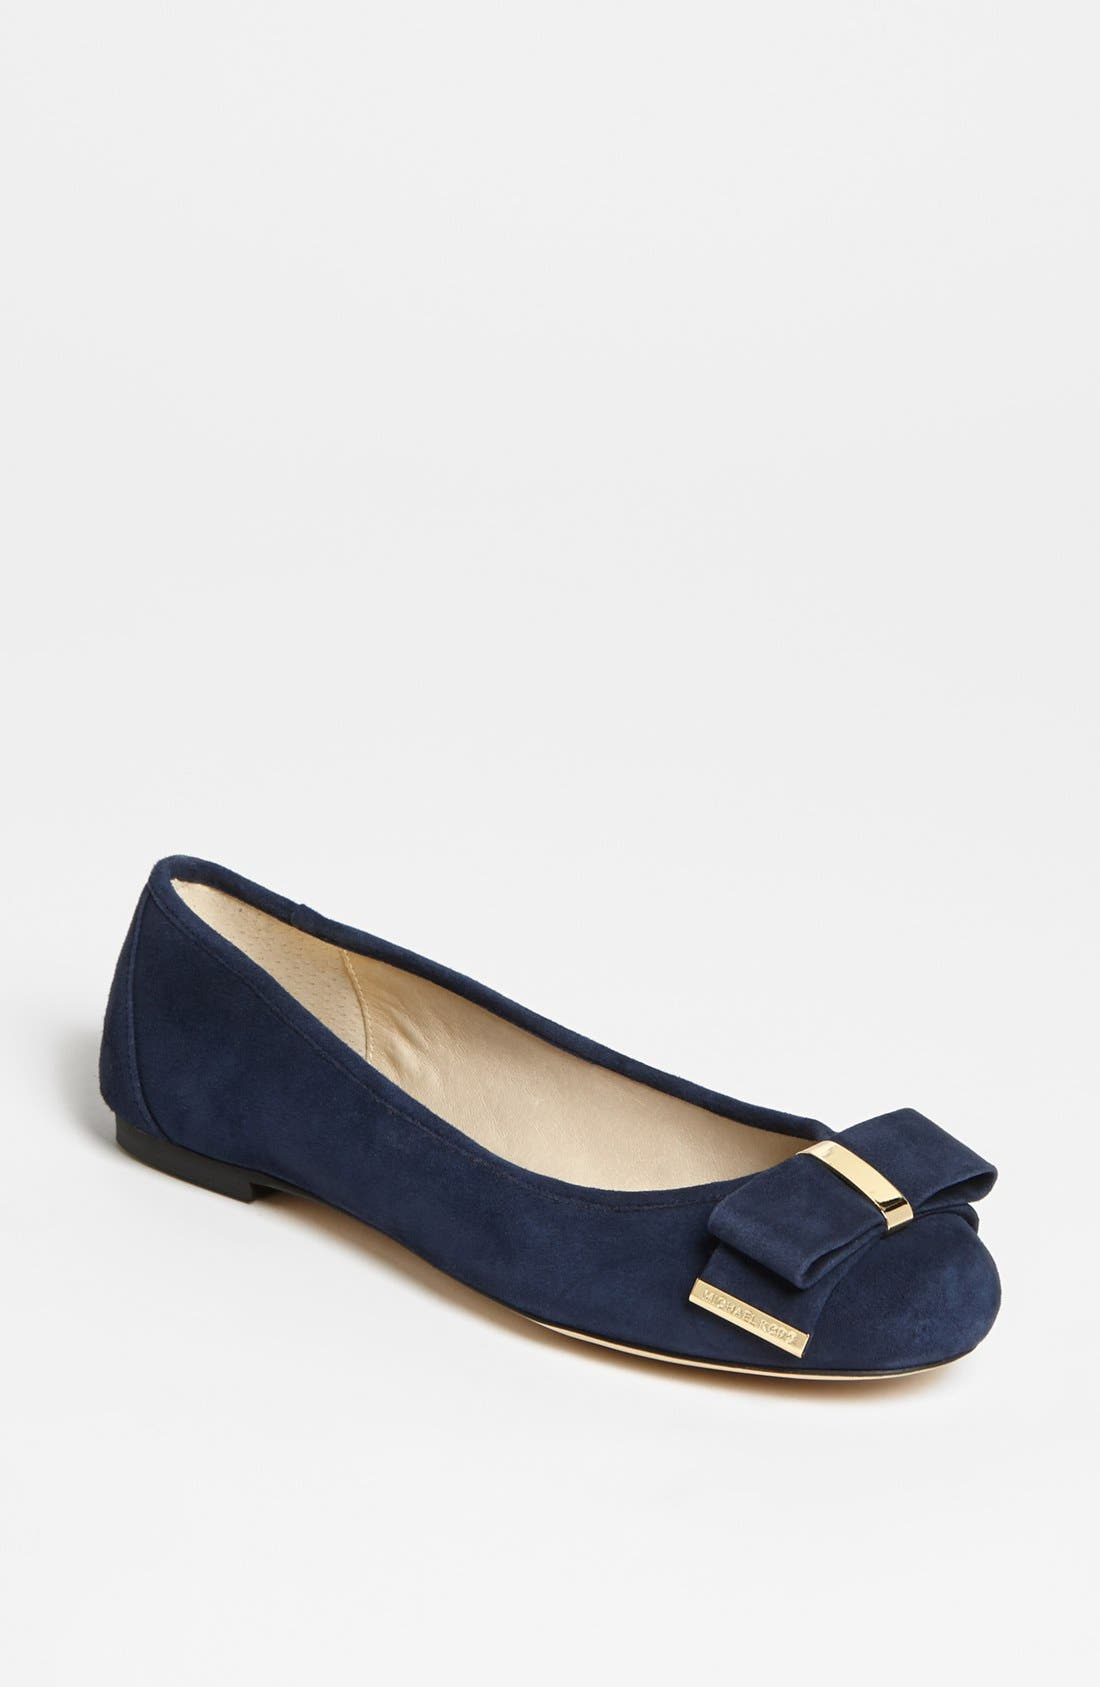 Alternate Image 1 Selected - MICHAEL Michael Kors 'Delphine' Ballet Flat